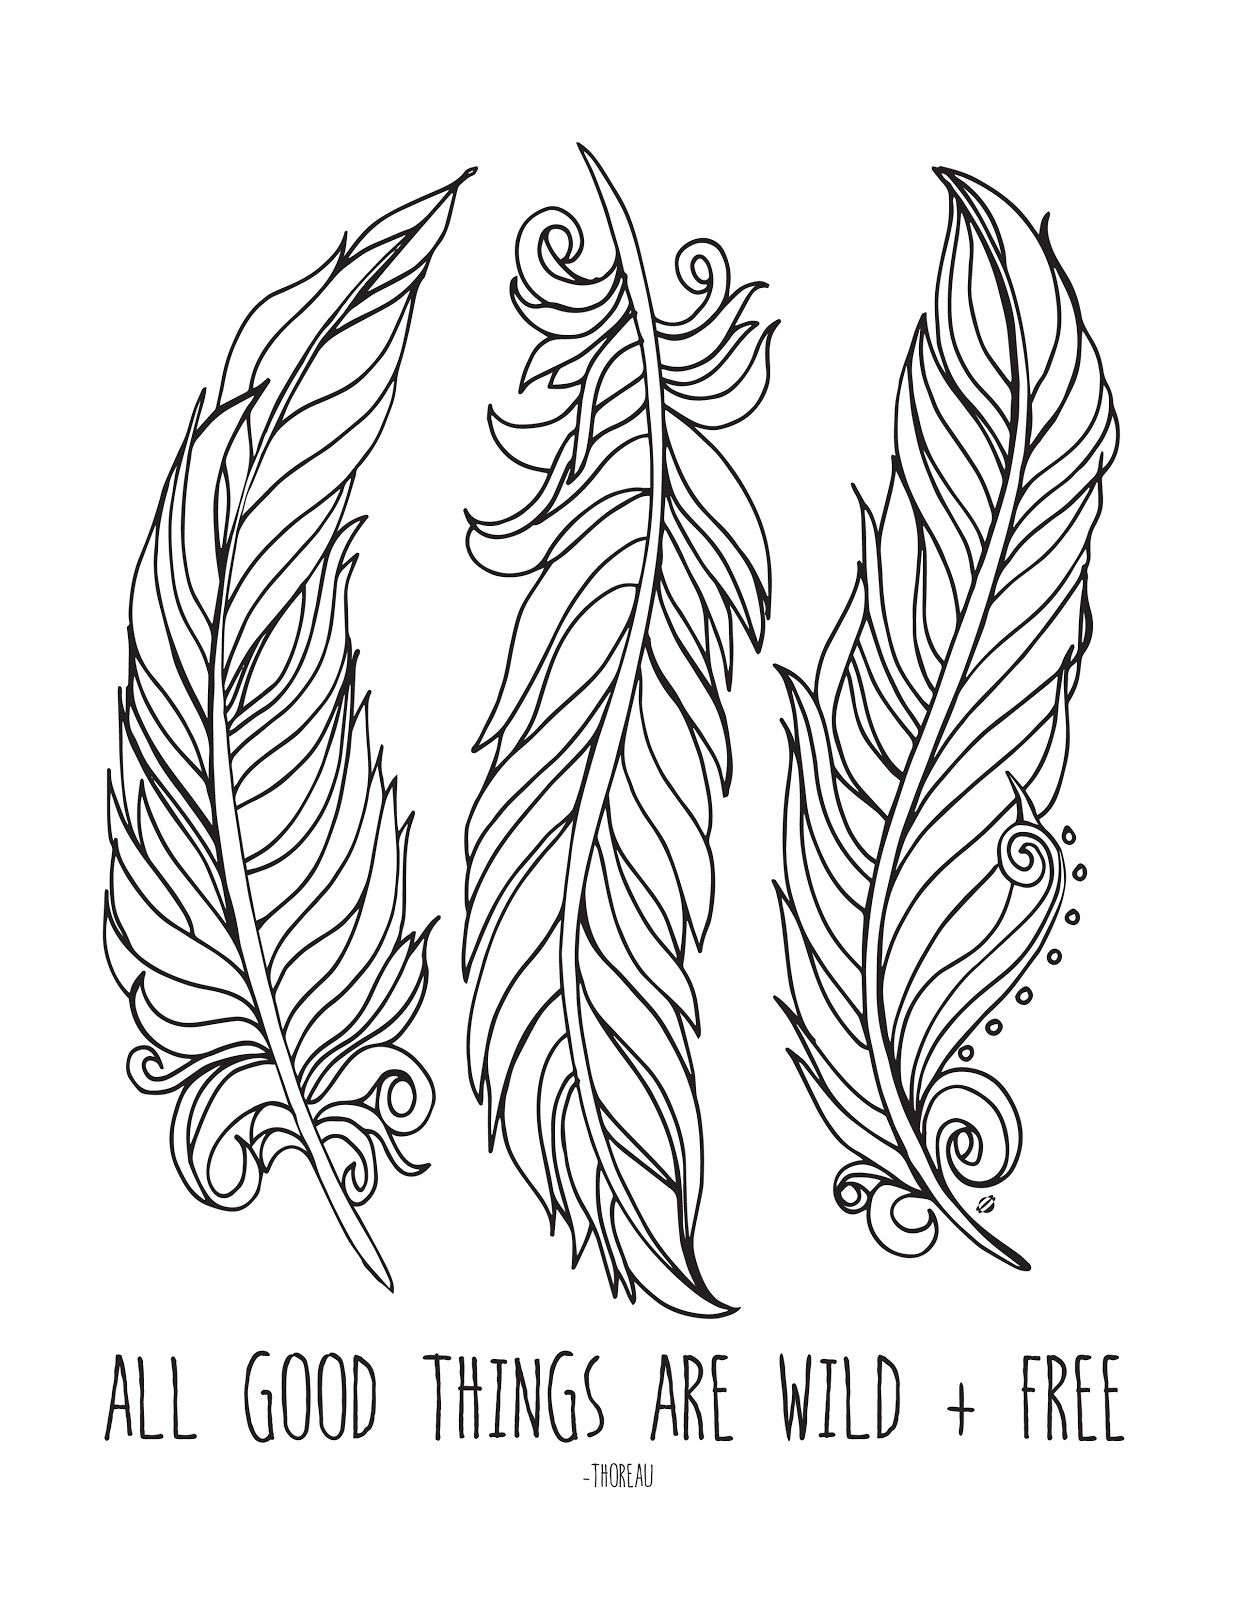 Indian Feathers Coloring Pages  Download 19c - Save it to your computer